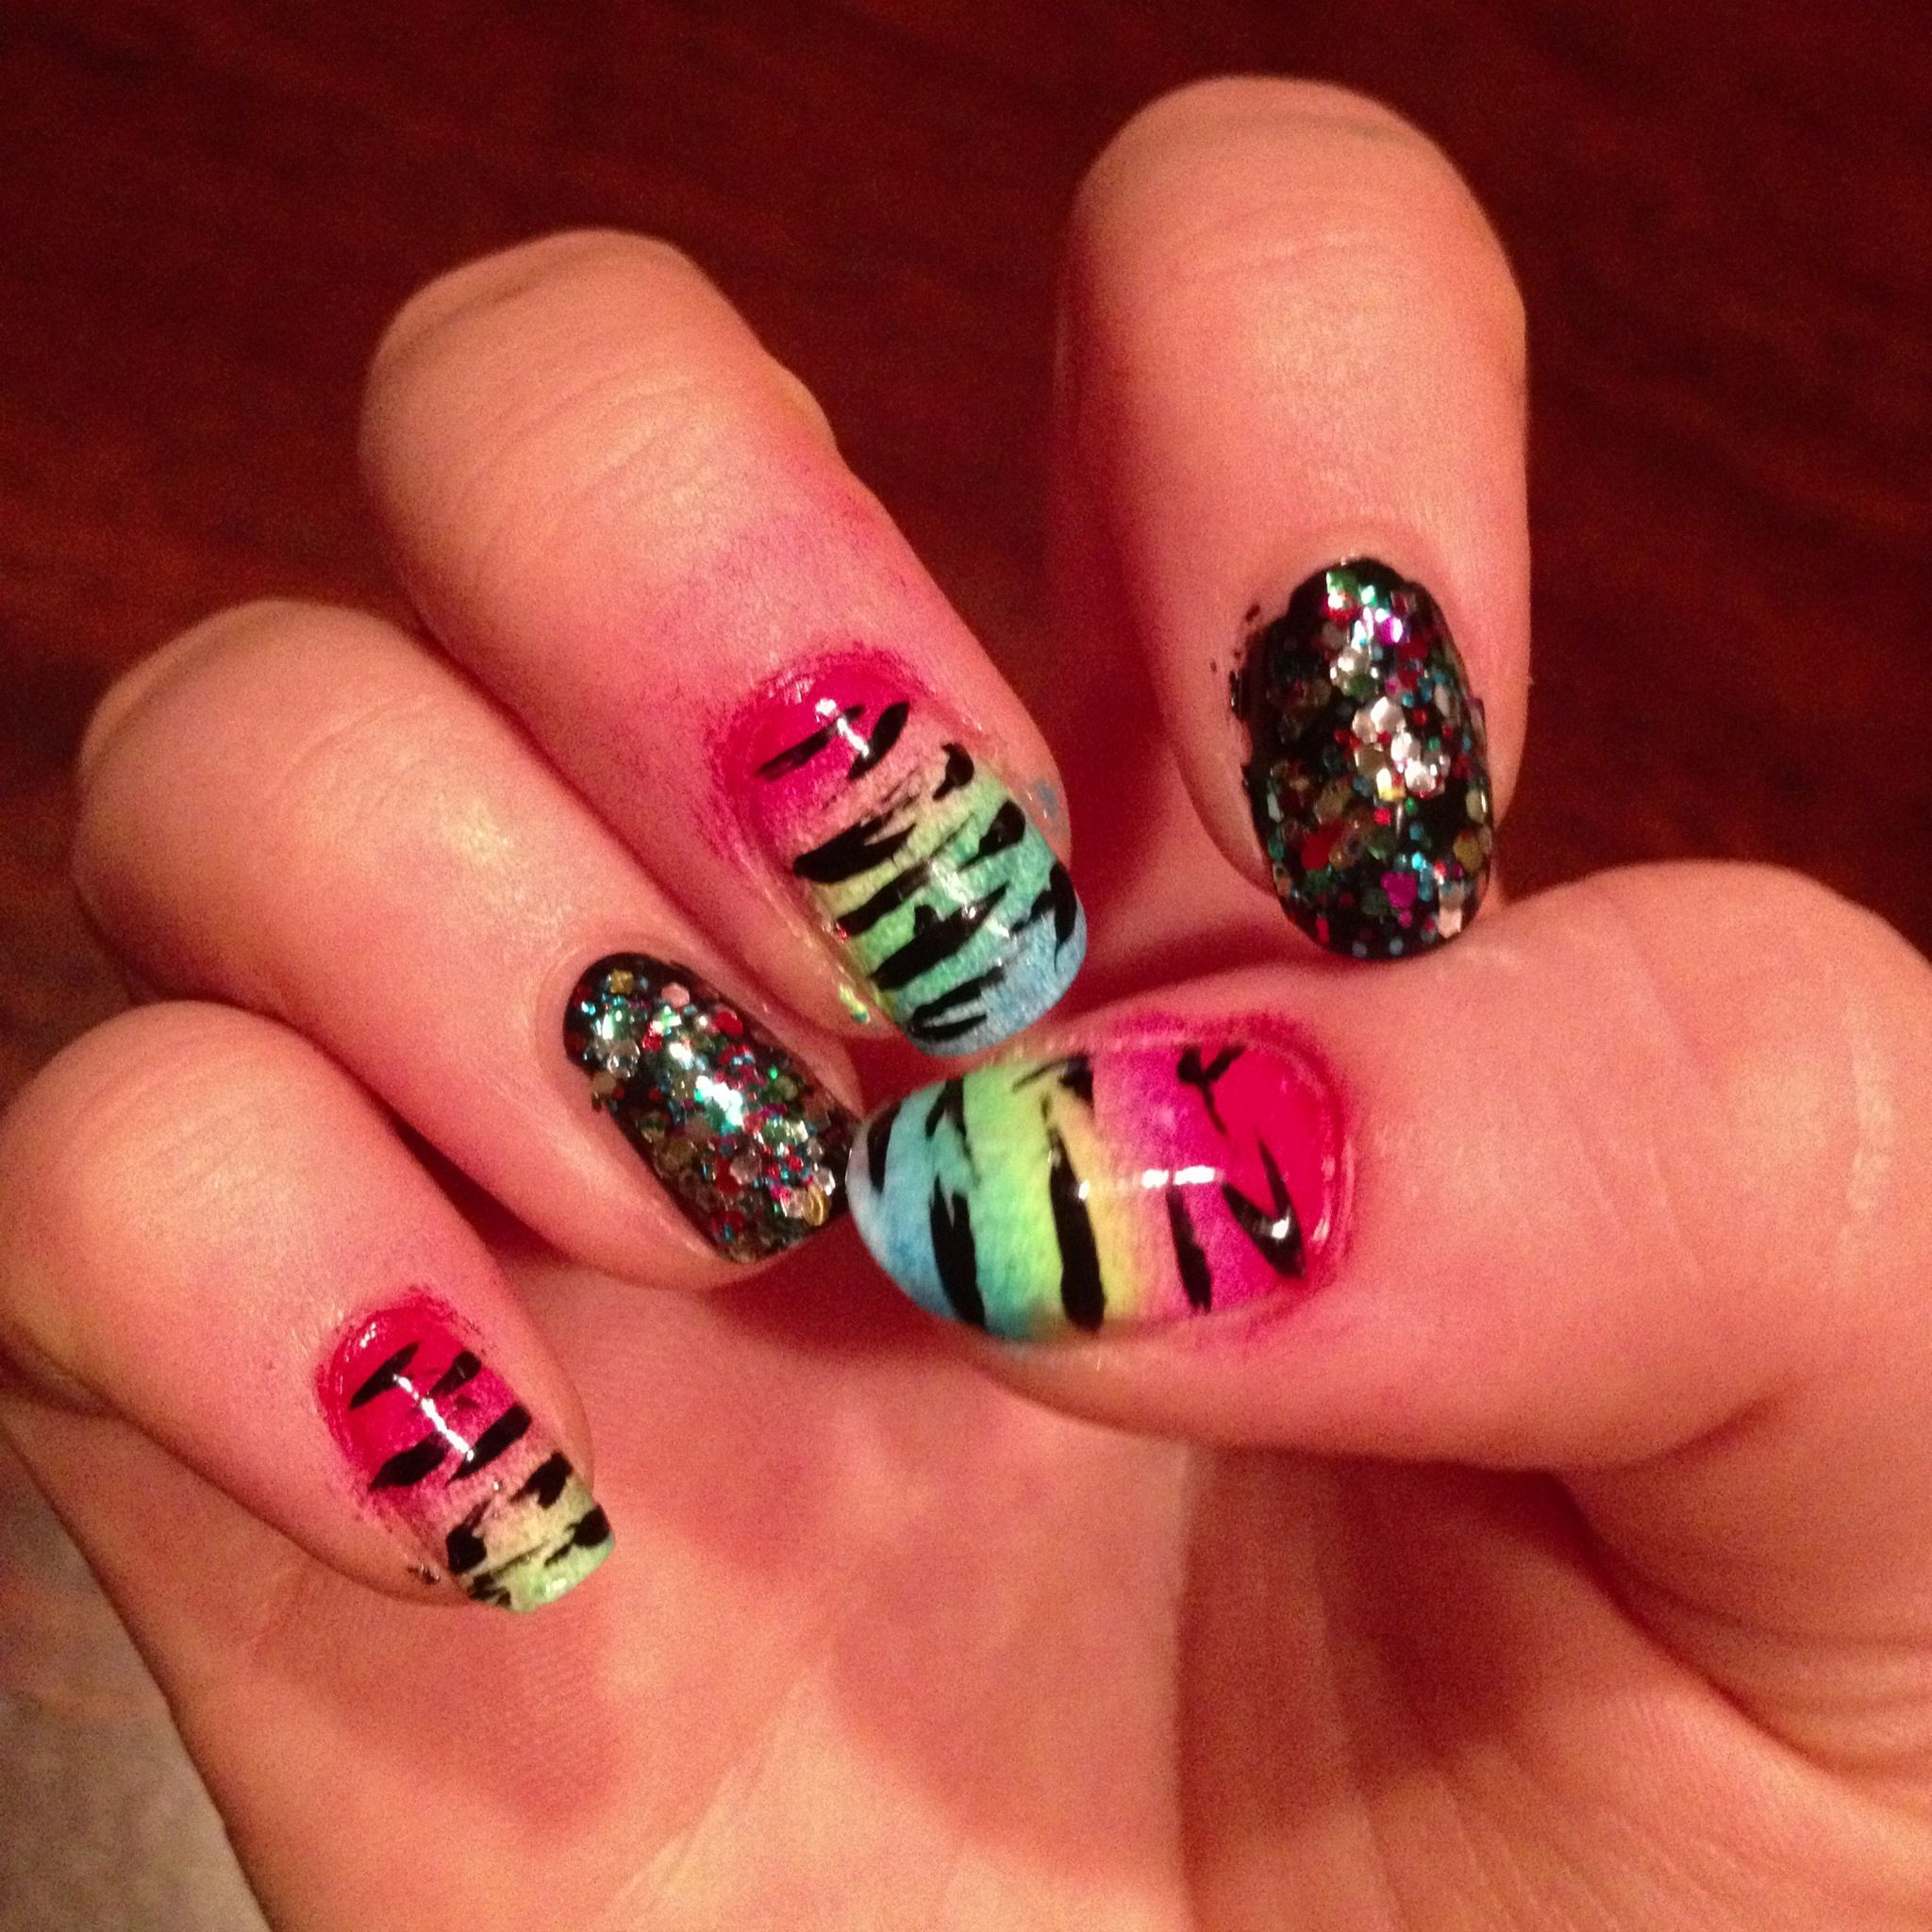 Glitzy Tiger Nails | Nails | Pinterest